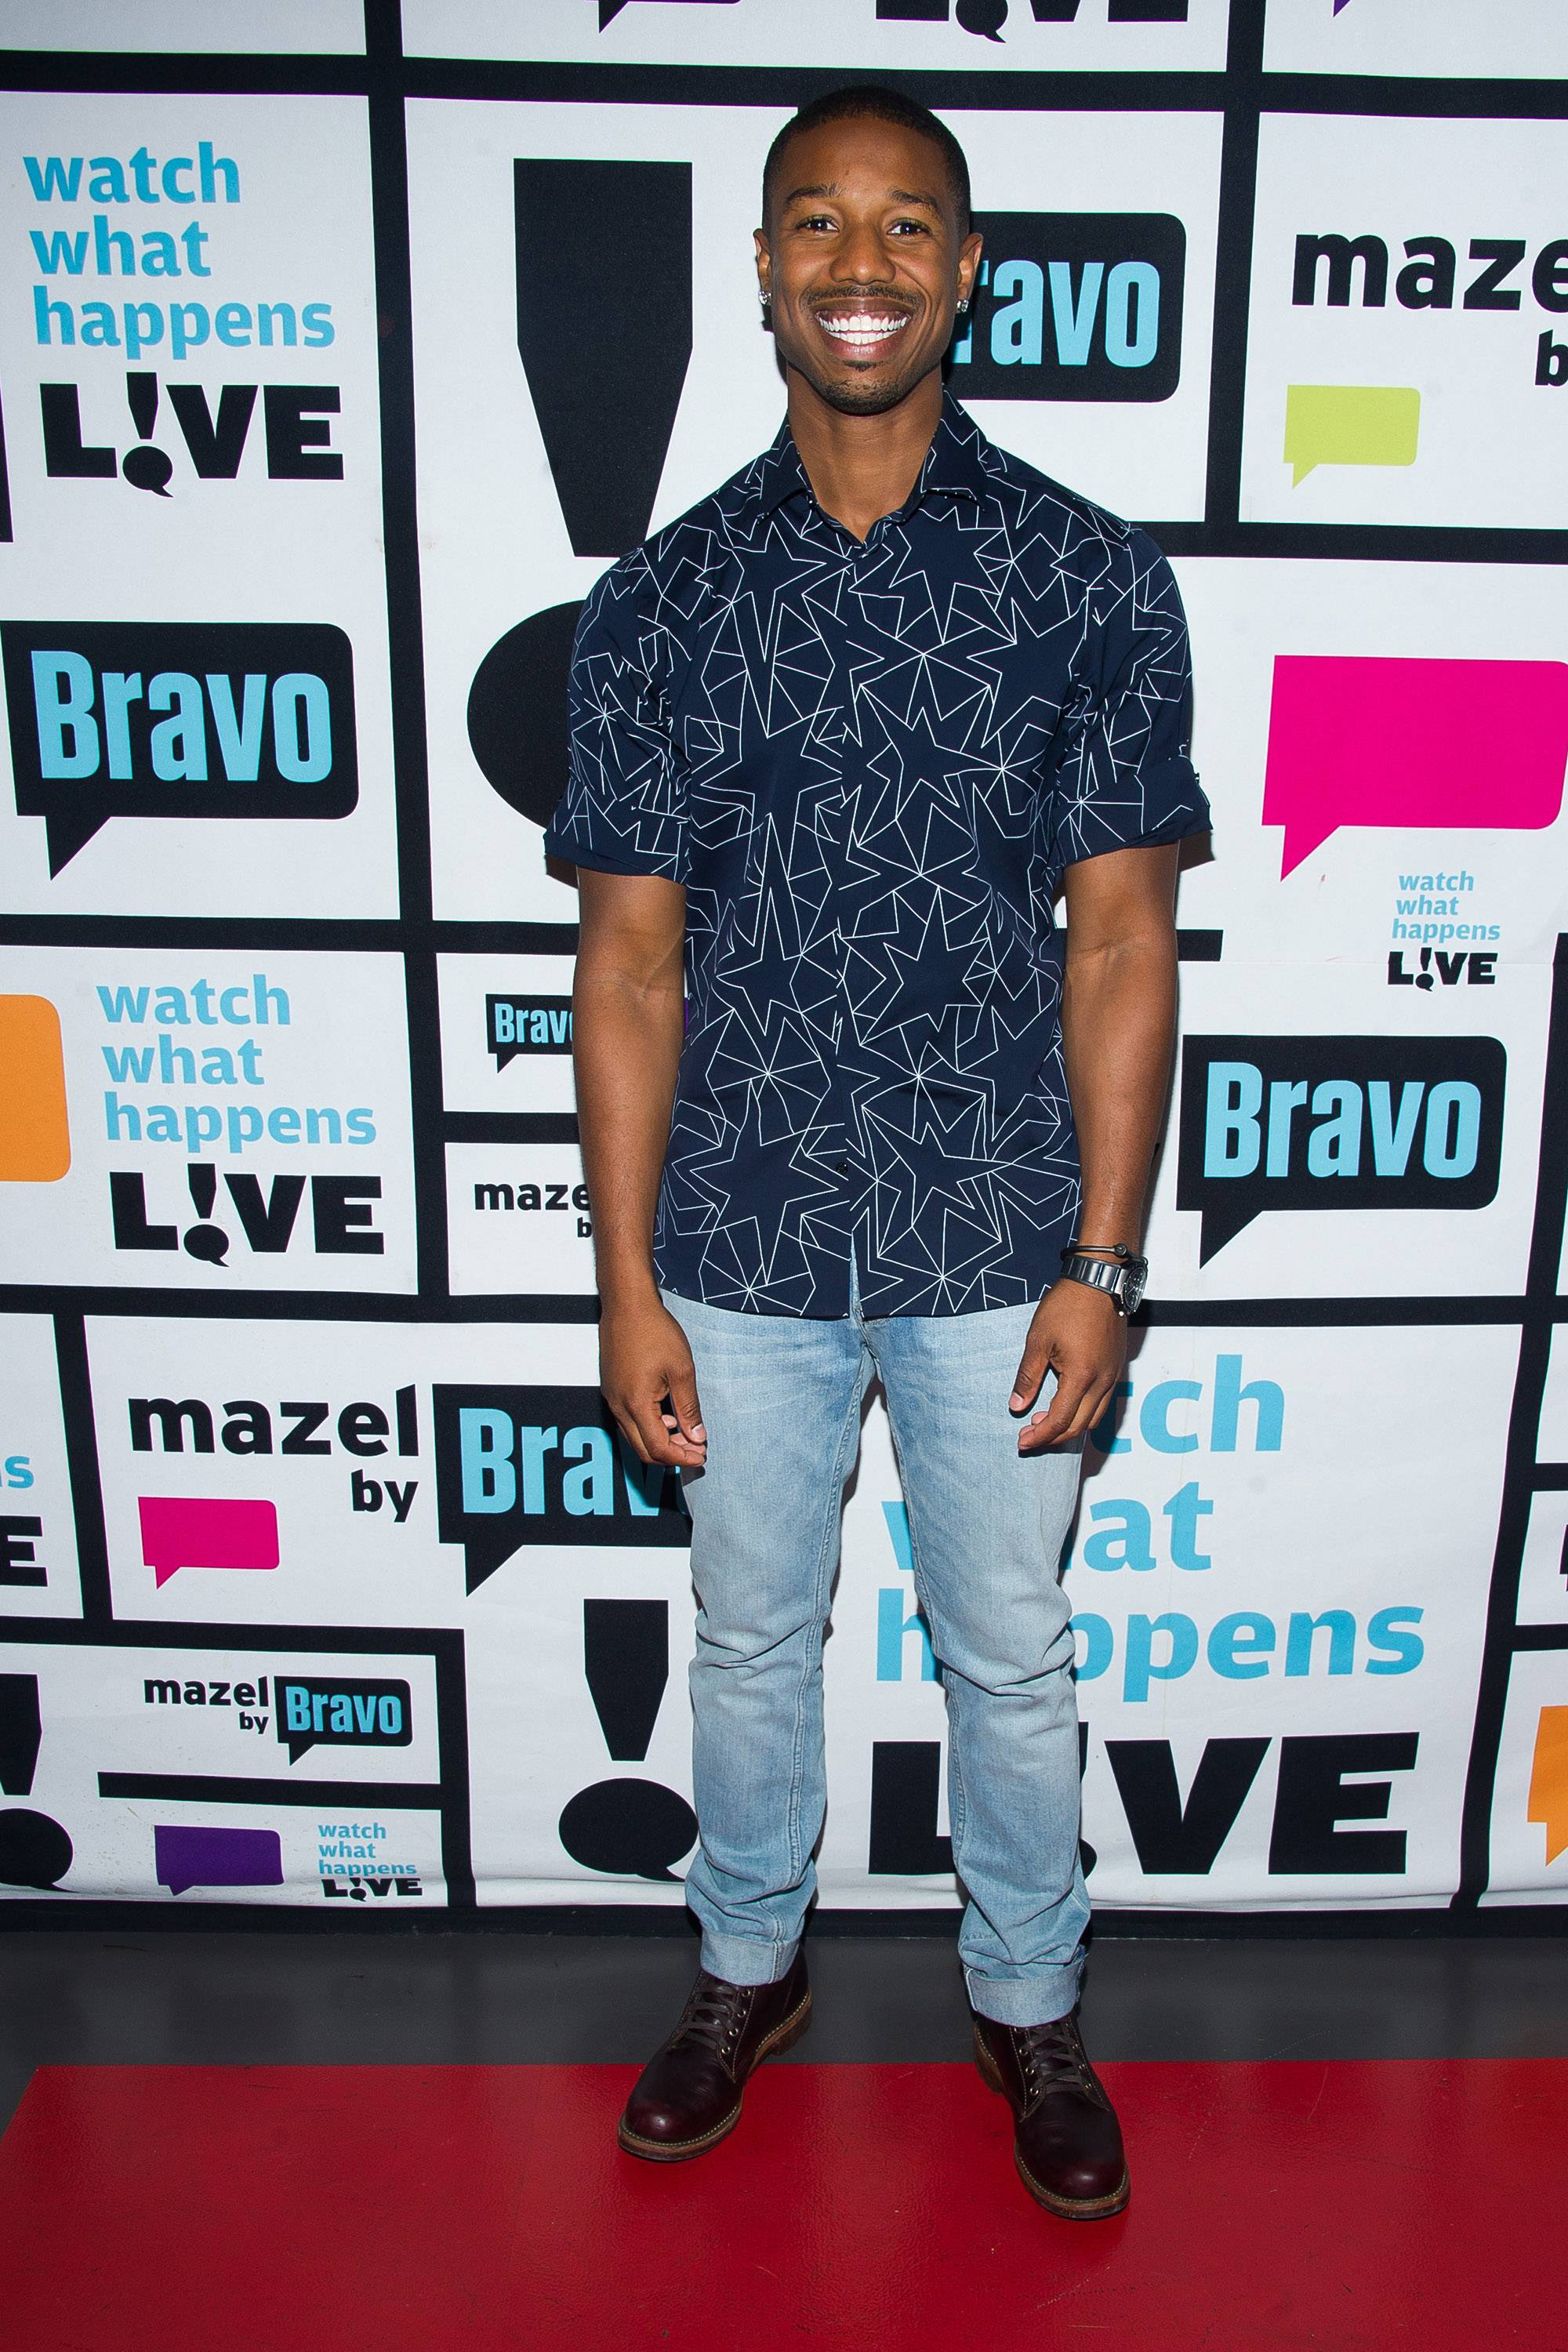 Michael B. Jordan - He's about to be international. If Sanaa is serious, she should stake her claim now.  (Photo: Charles Sykes/Bravo/NBCU Photo Bank via Getty Images)